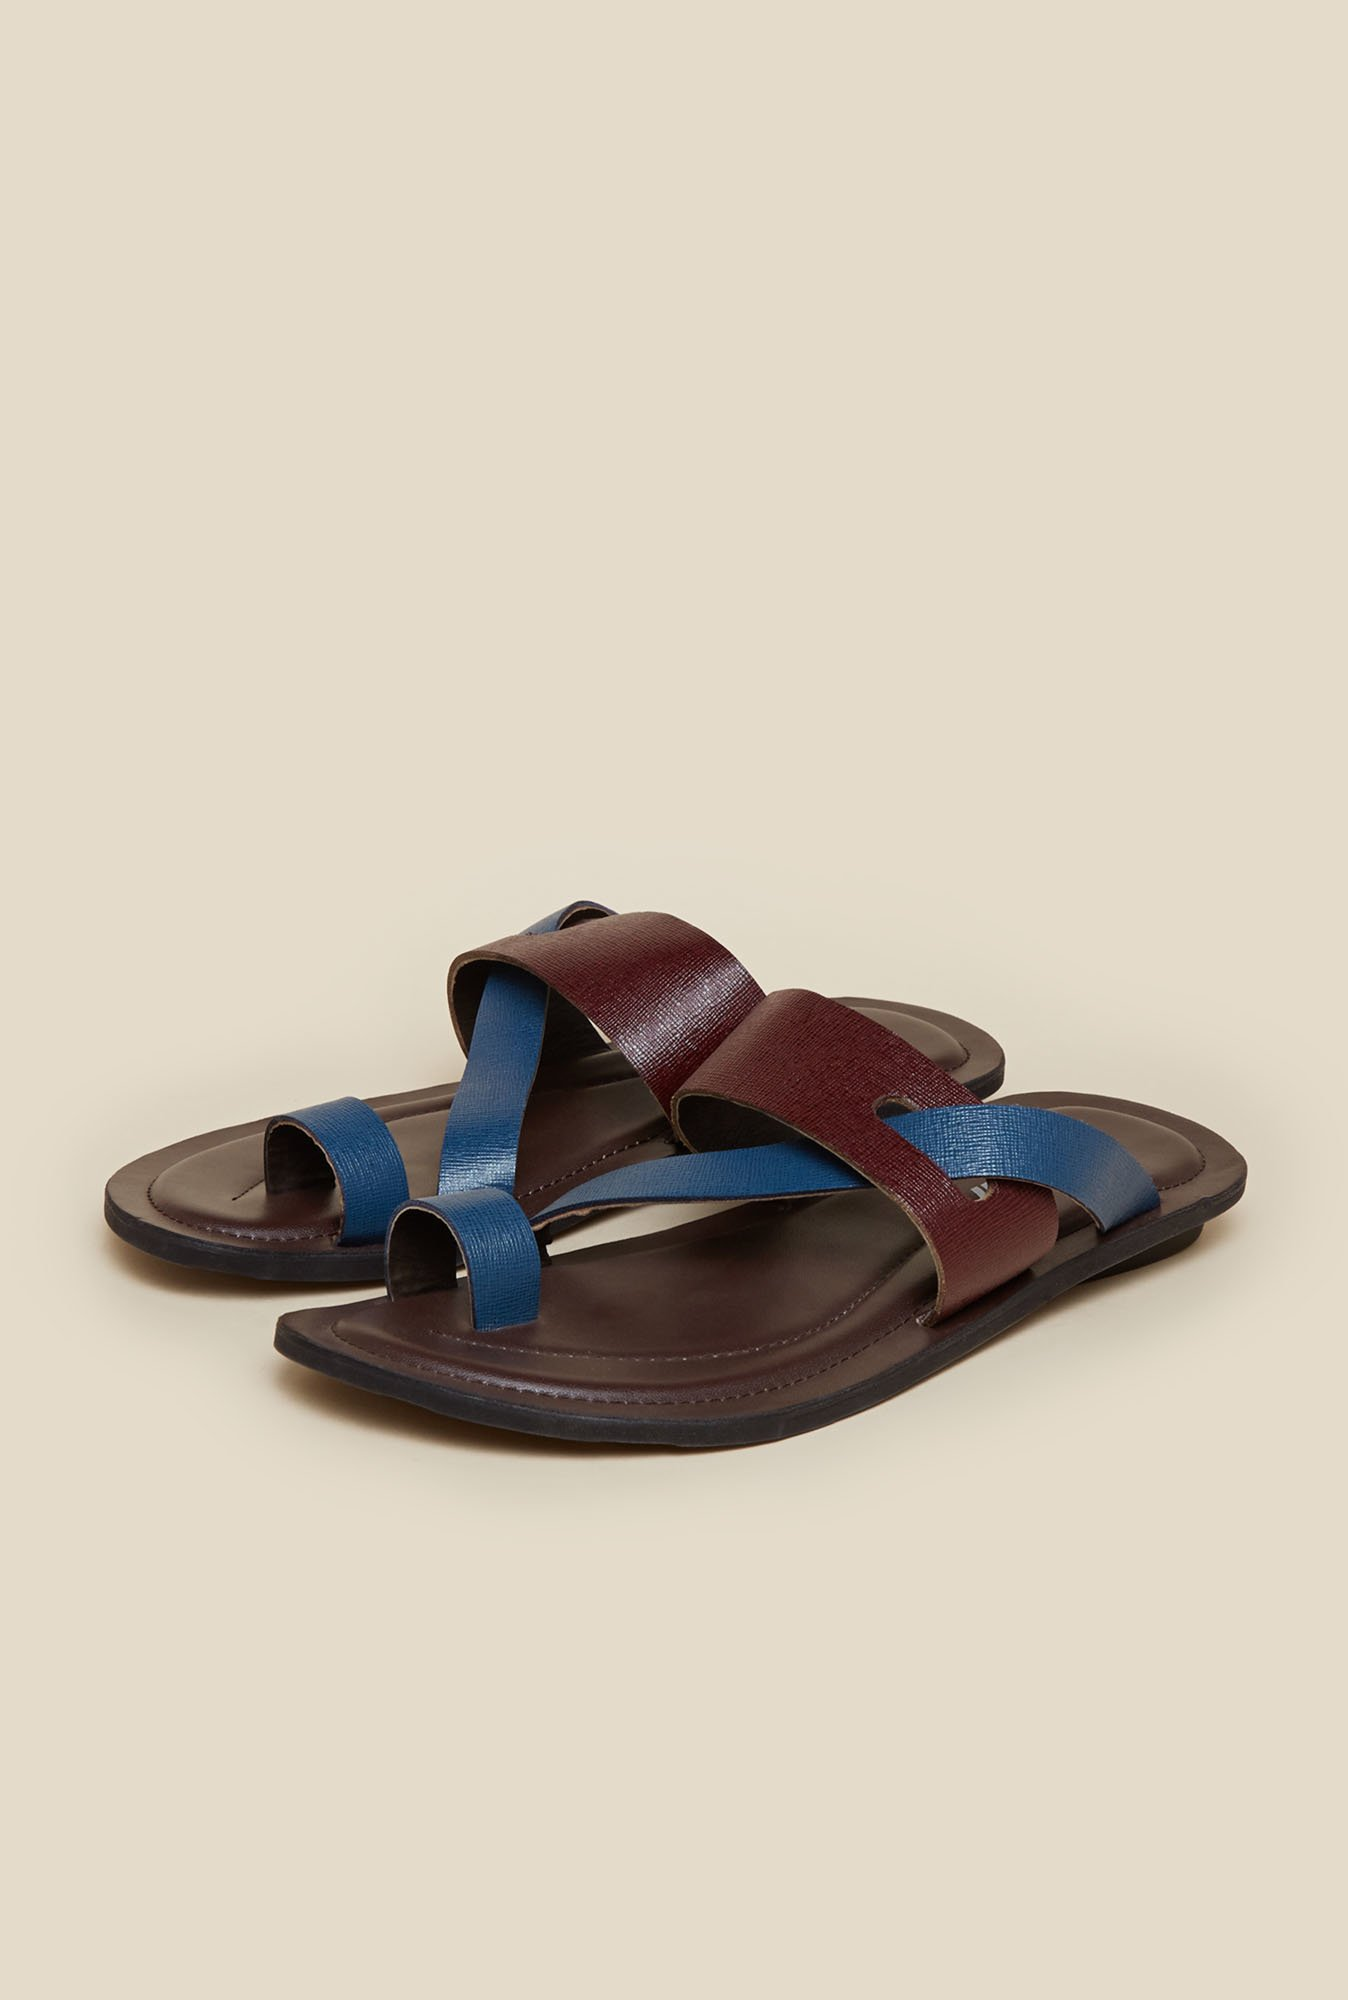 Mochi Maroon & Blue Leather Casual Sandals